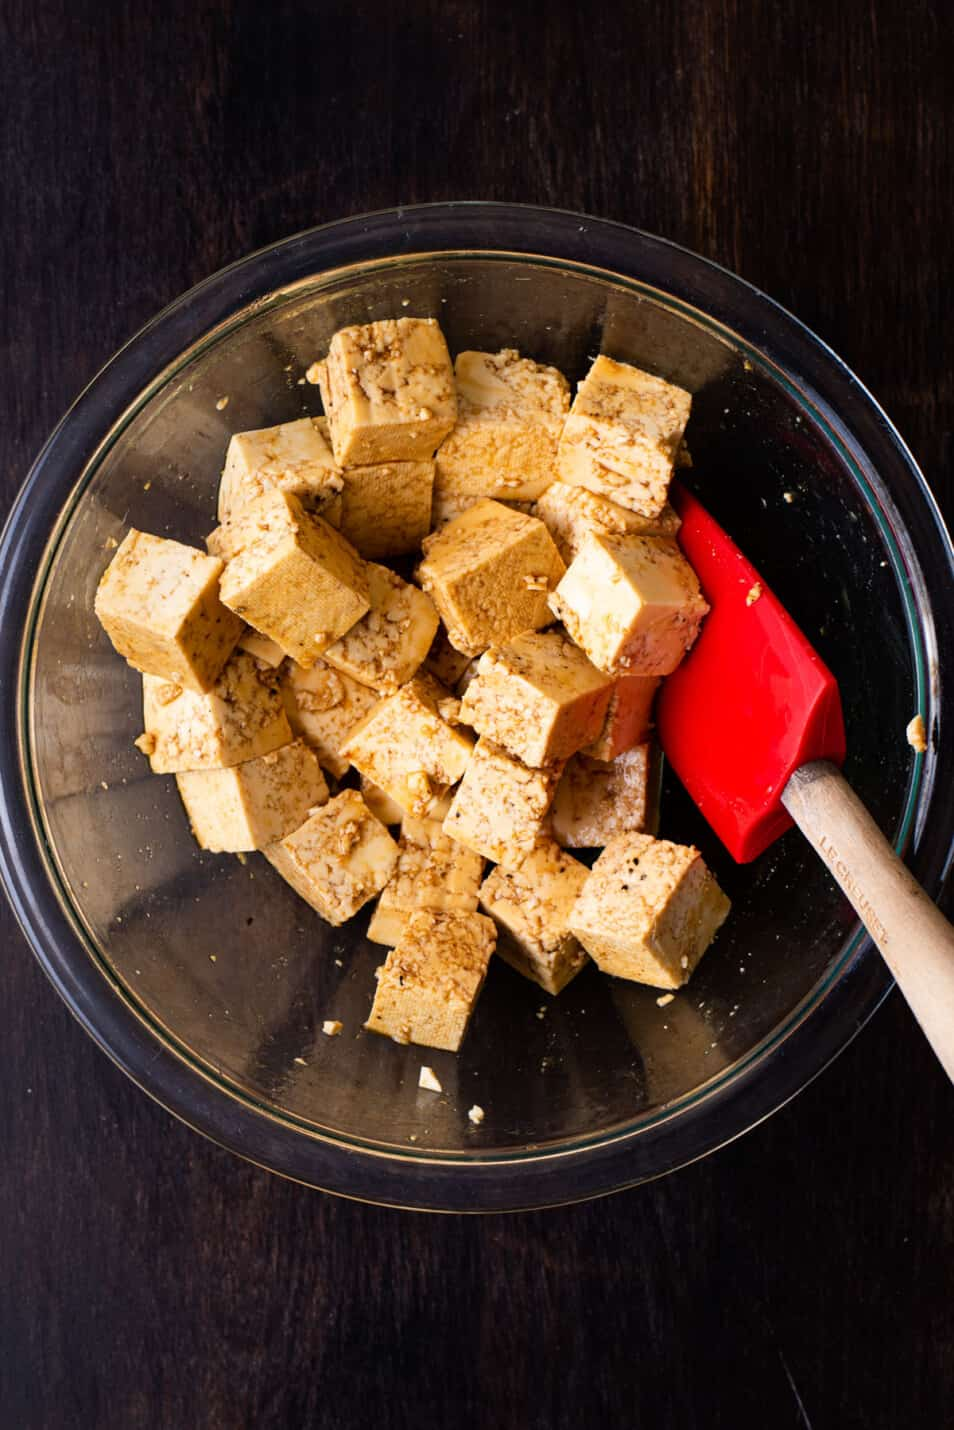 Cubes of tofu marinating with soy sauce and maple syrup.